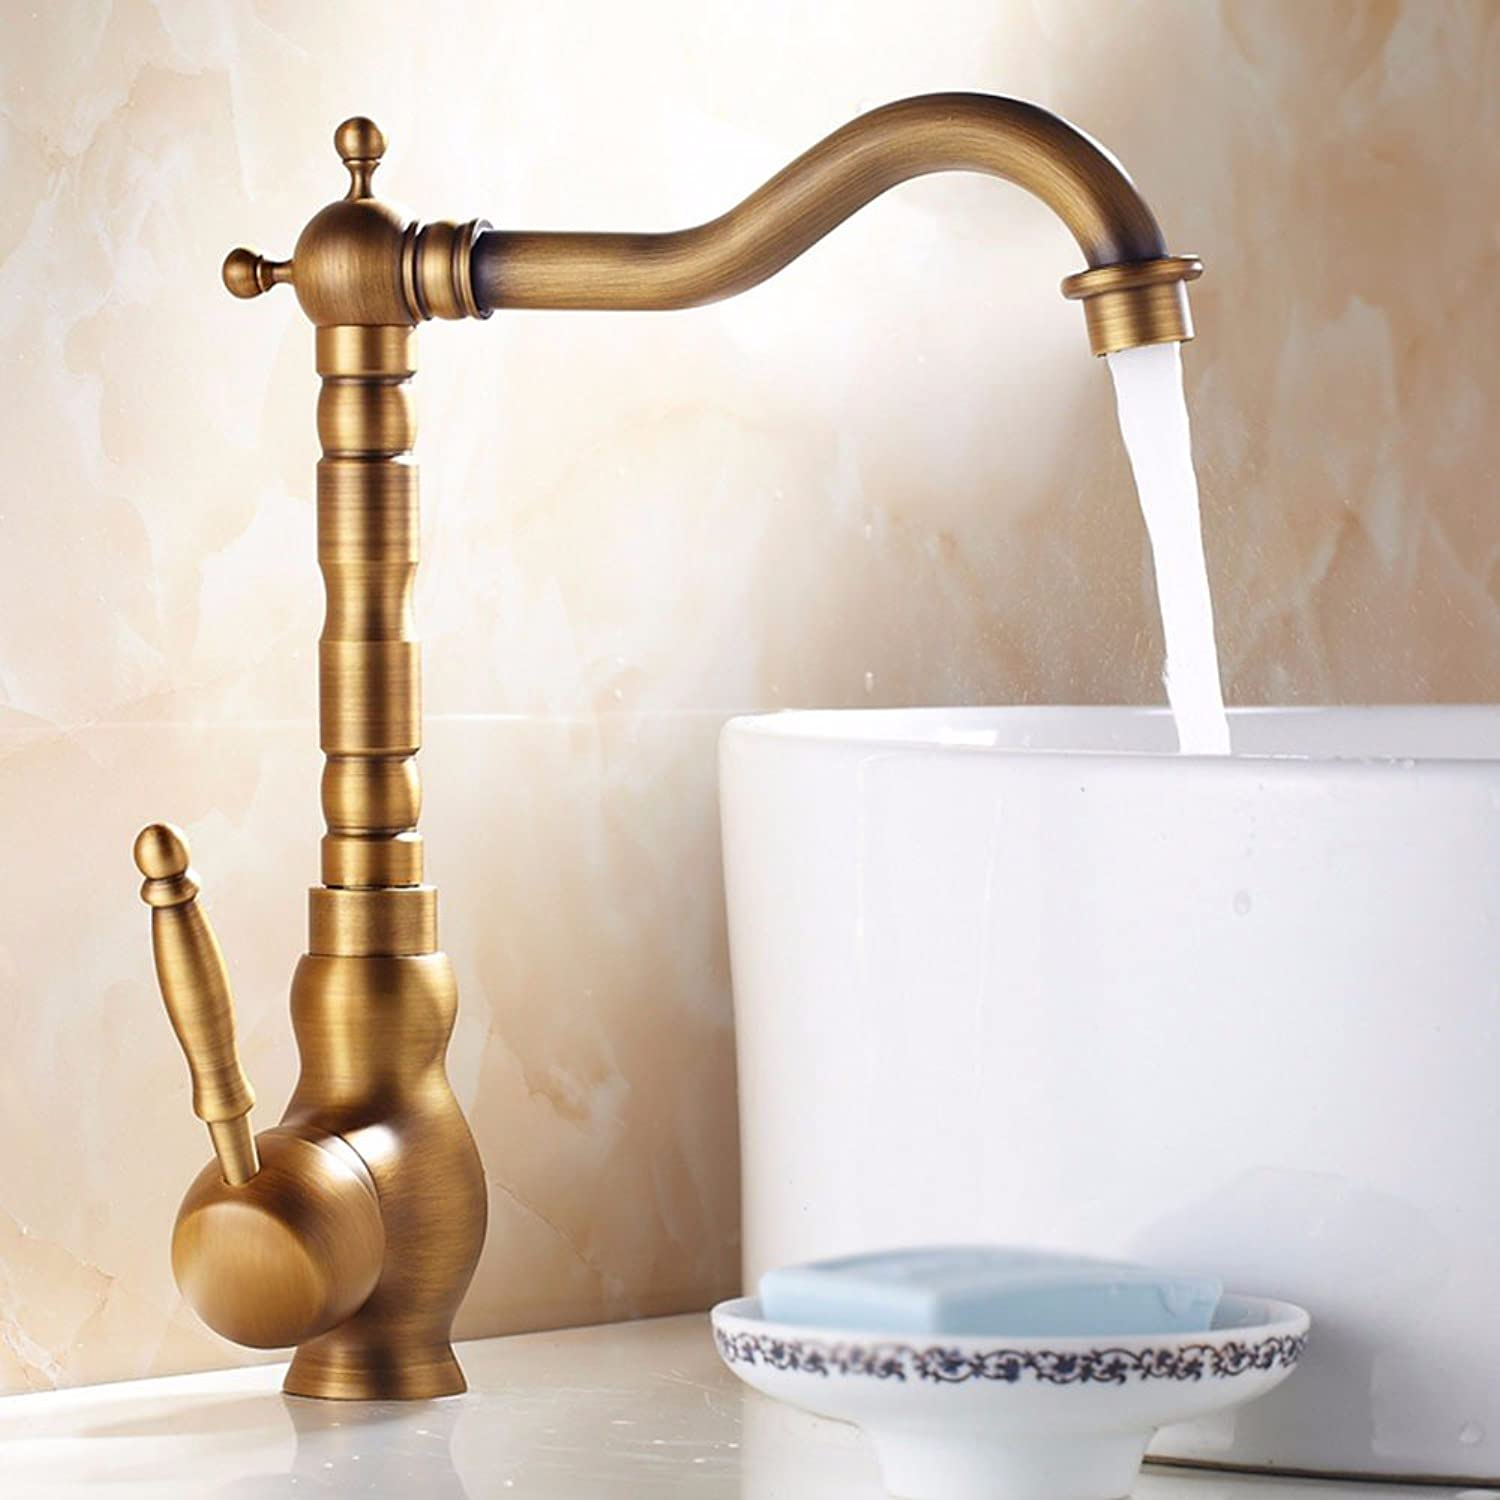 Hlluya Professional Sink Mixer Tap Kitchen Faucet Copper, hot and cold, the basin, Single Hole, redate, sink faucet 4